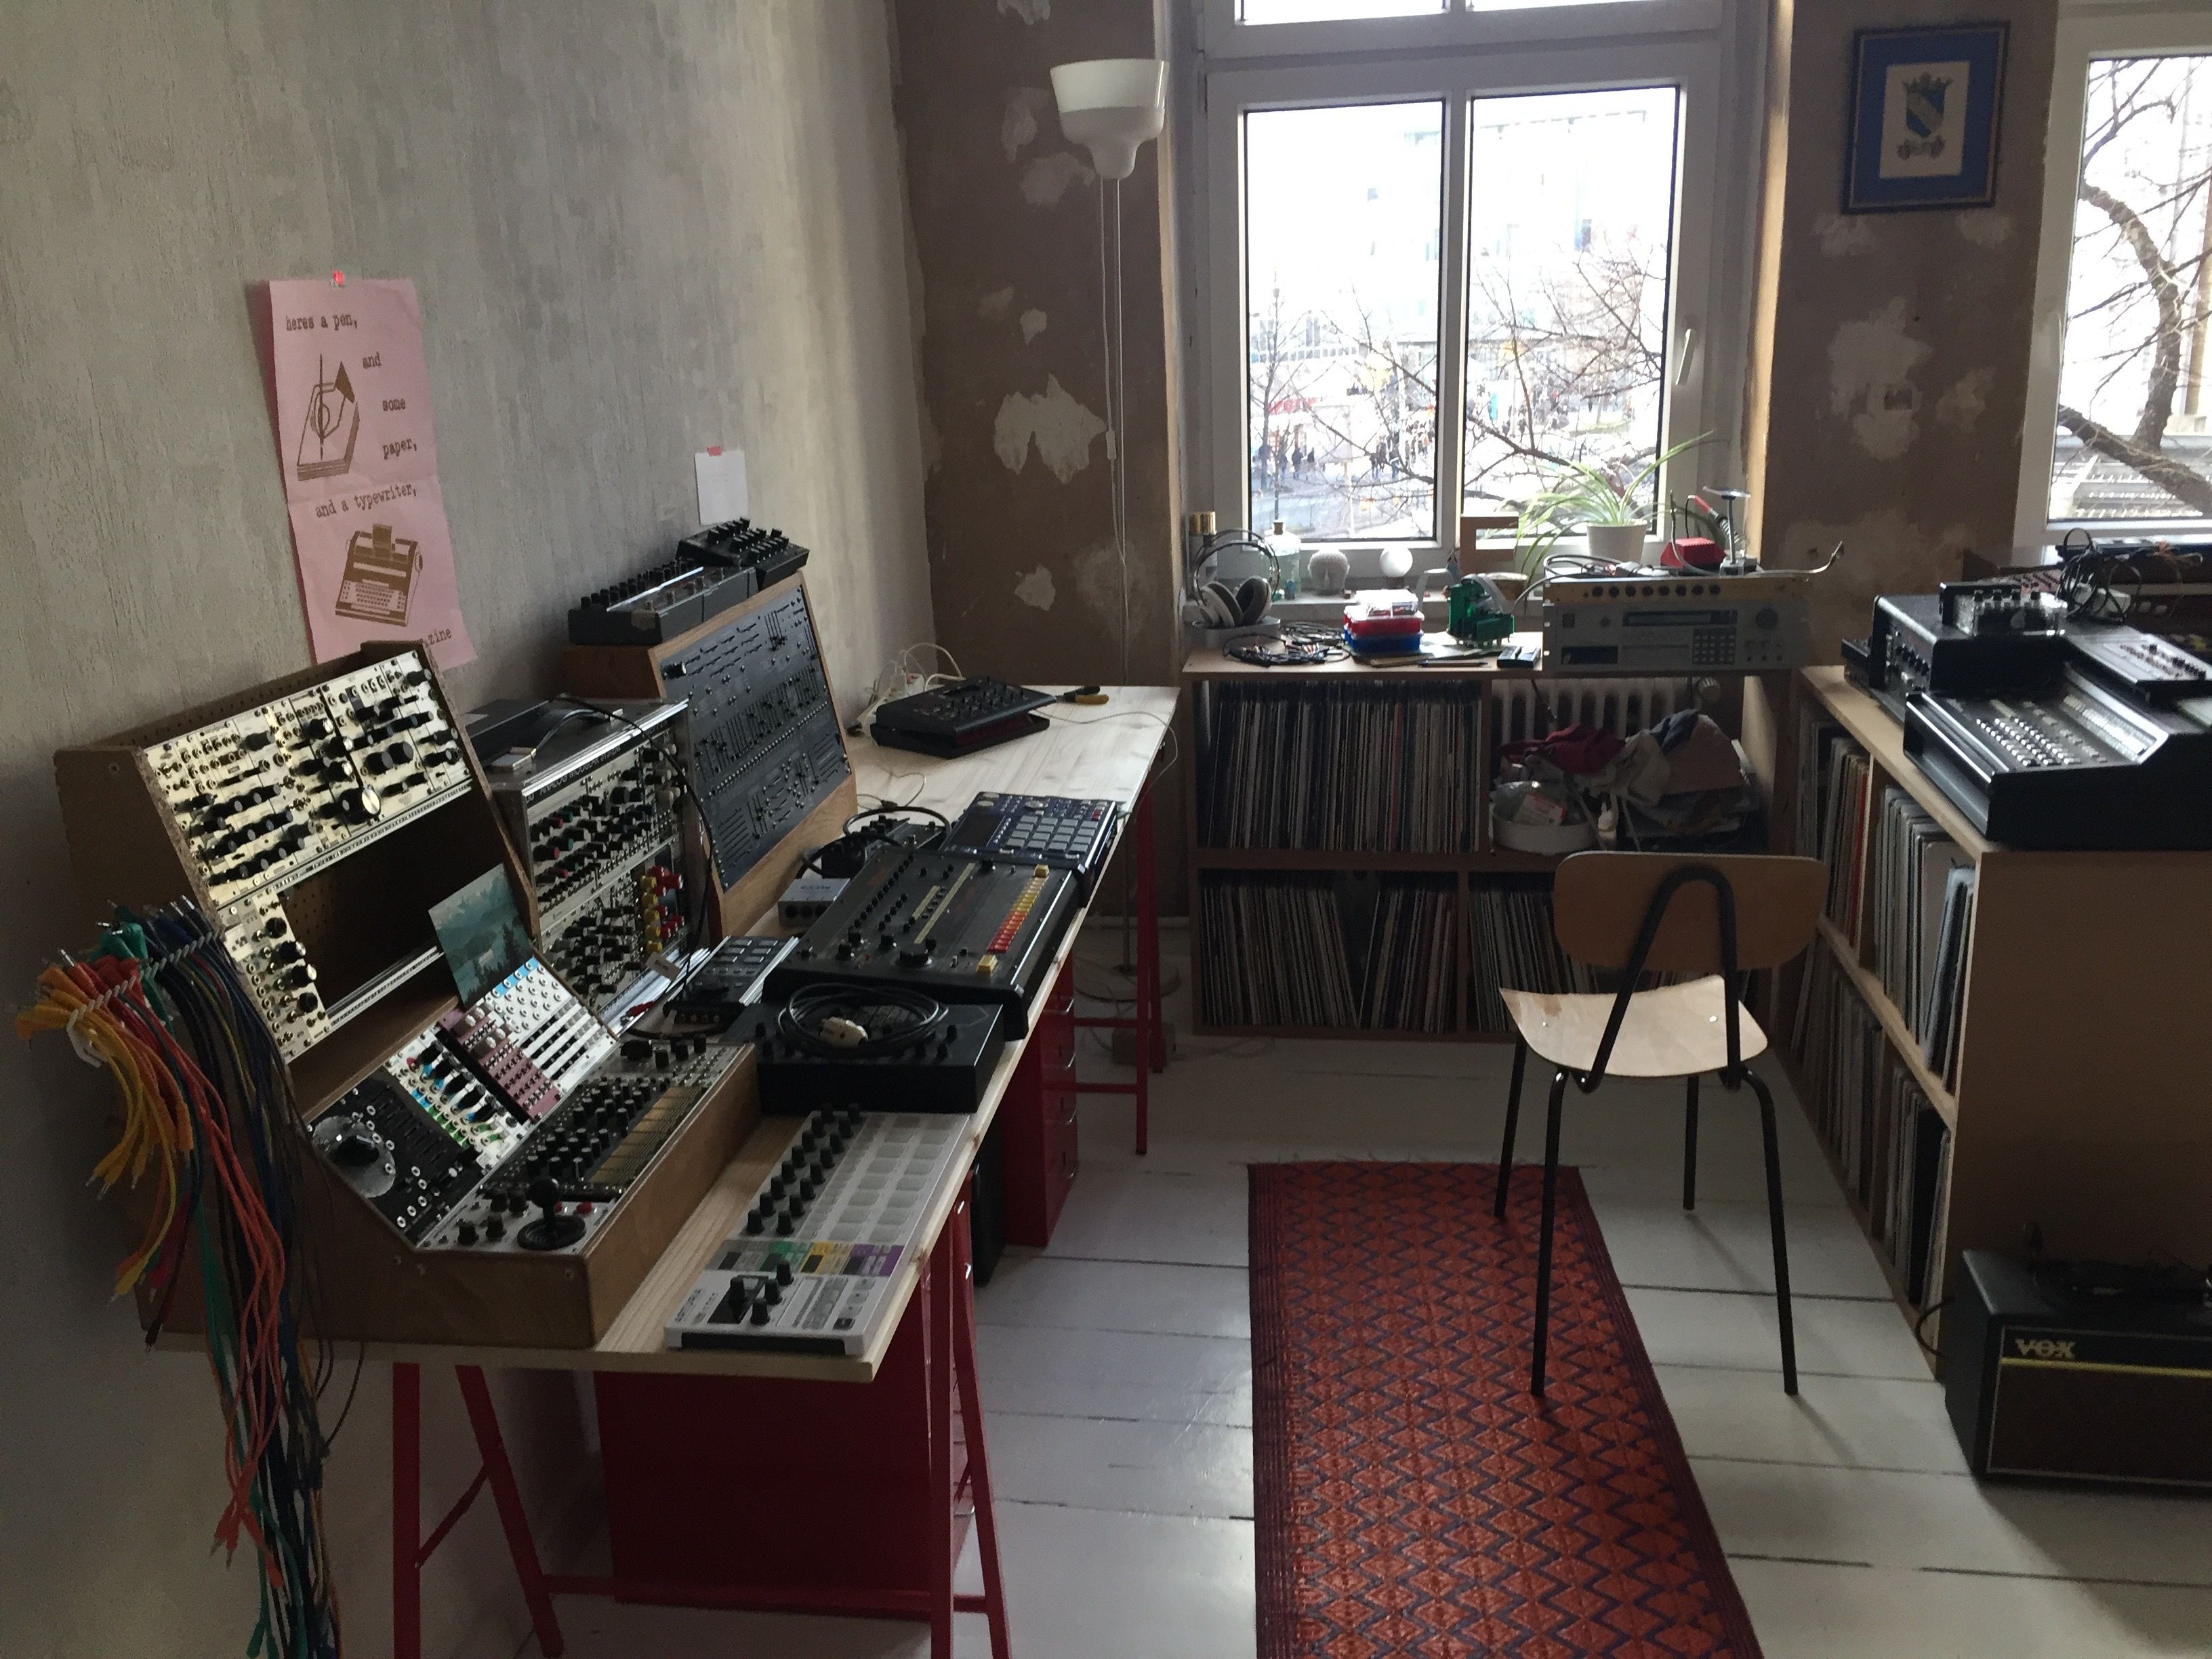 Part of the Mole's considerable gear collection; S900 visible near the window.